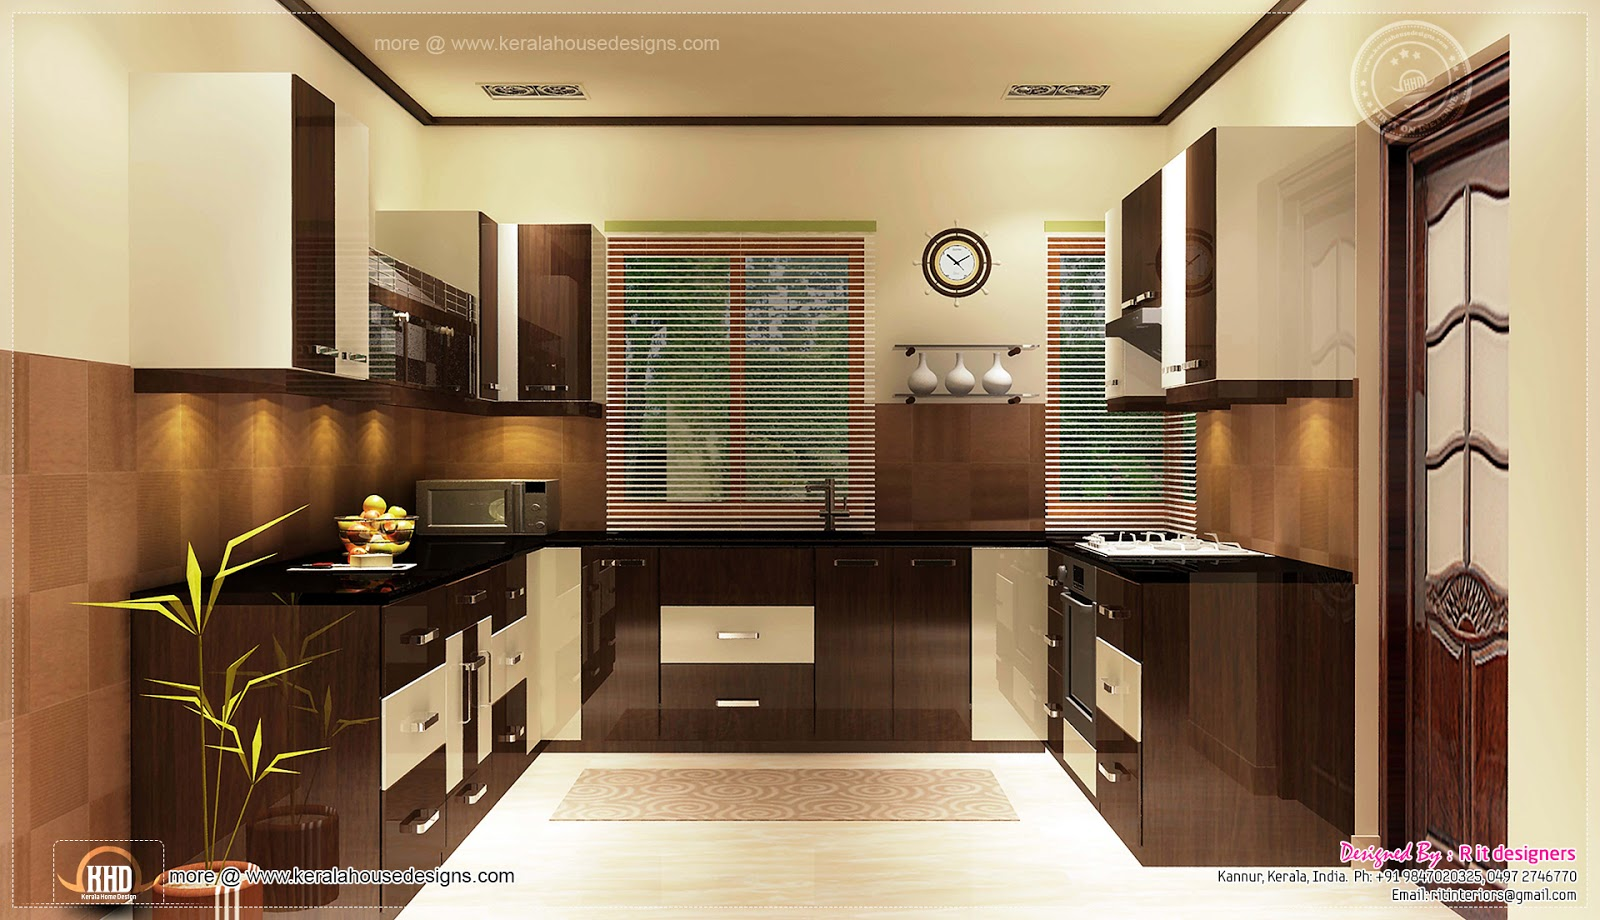 Home interior designs by rit designers kerala home Home plans with interior pictures